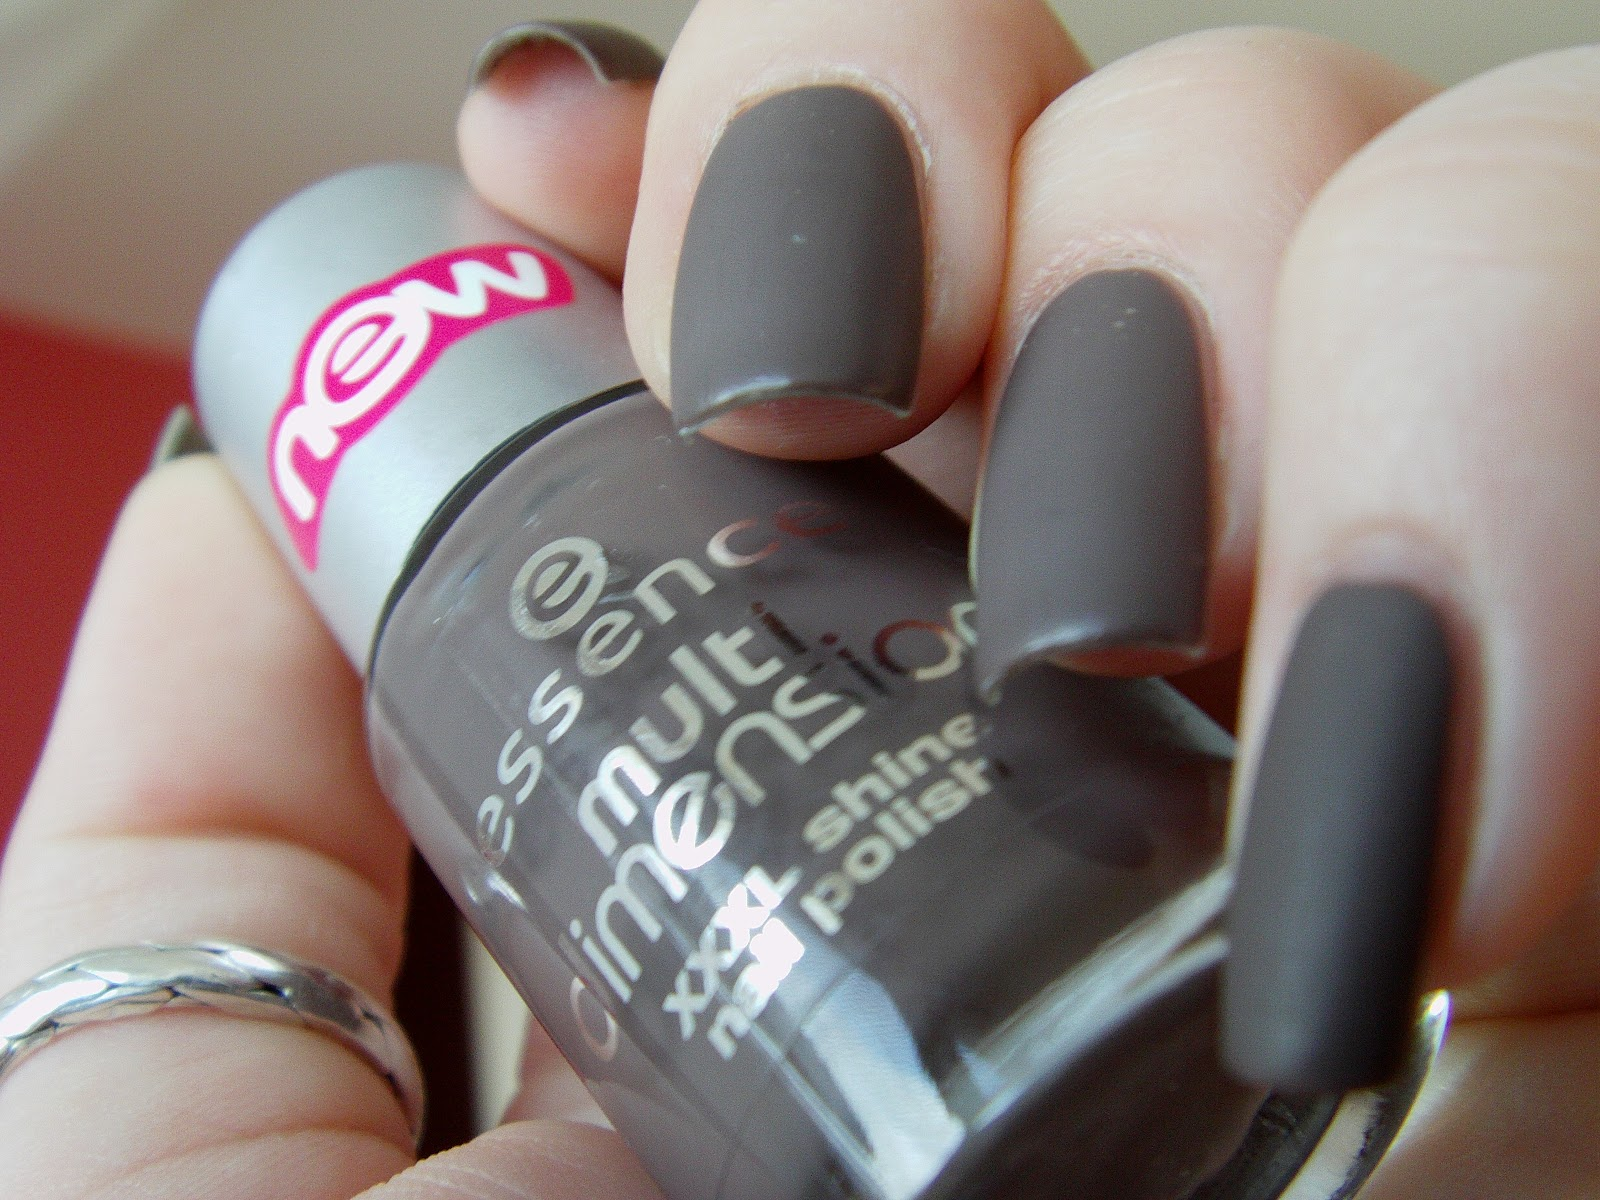 All about nails: Essence MOST WANTED with matt topcoat